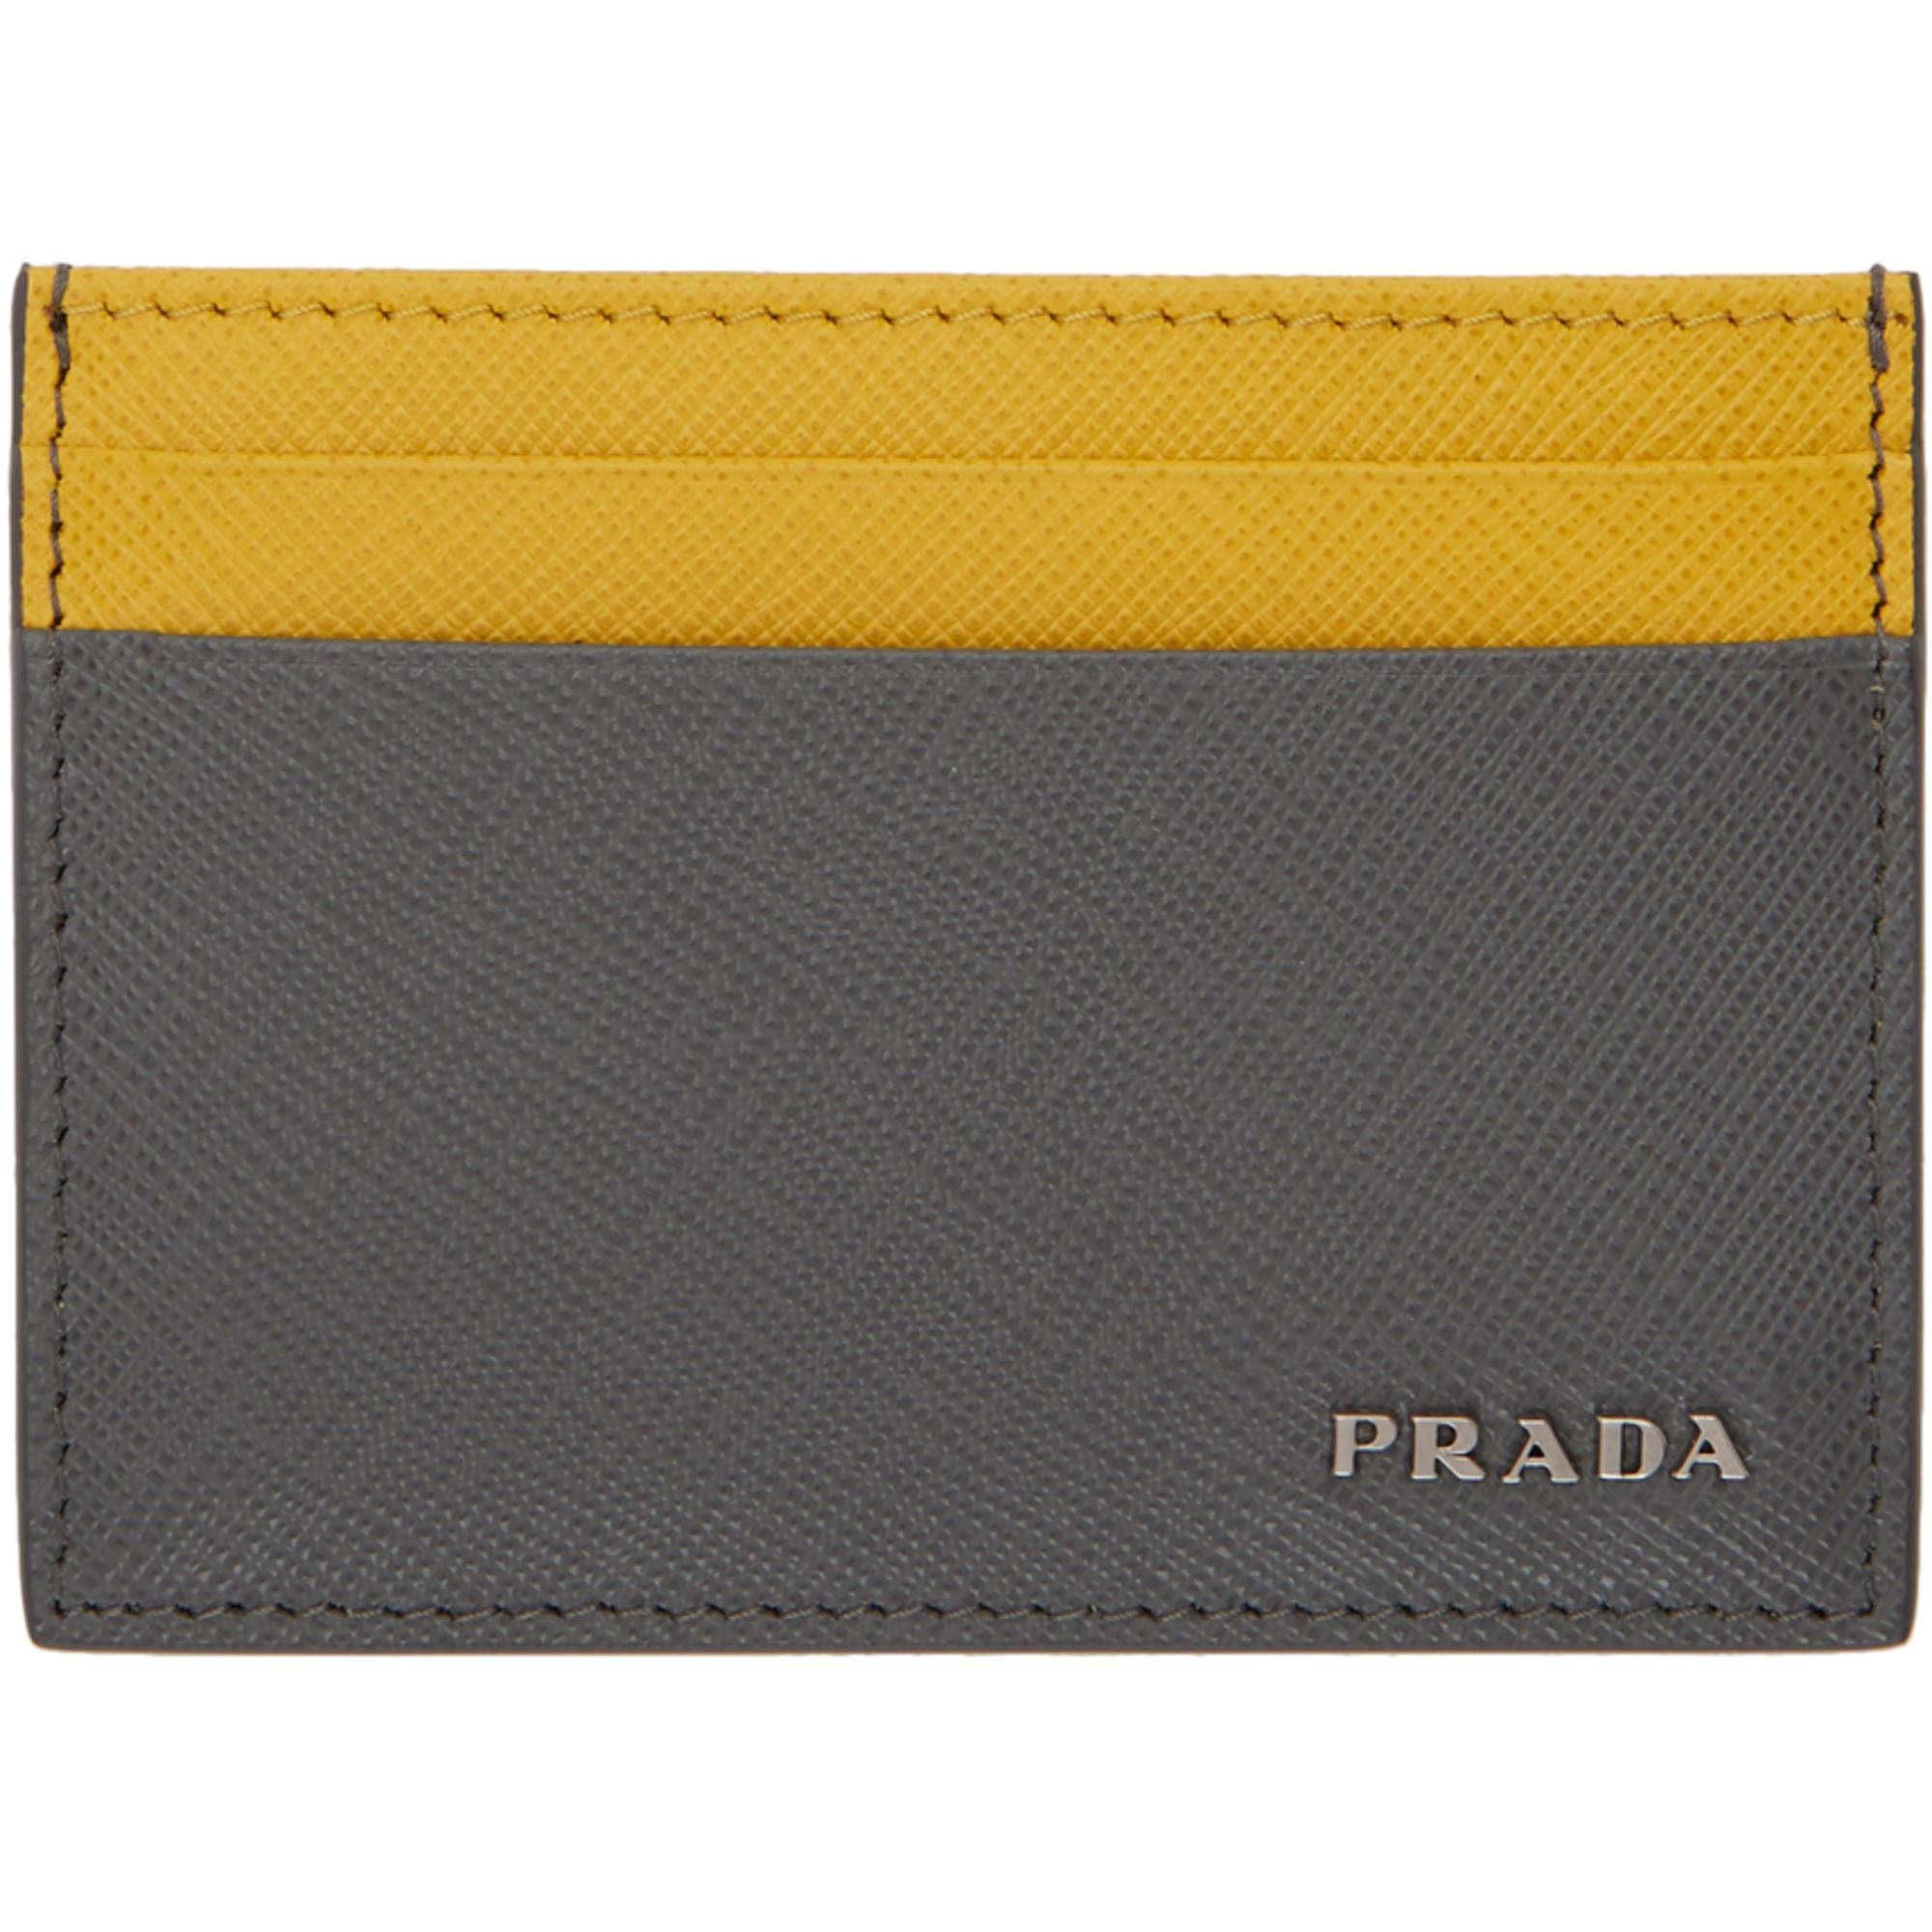 bde84cf9d7f2 Lyst - Prada Grey And Yellow Saffiano Bicolor Card Holder in Gray ...